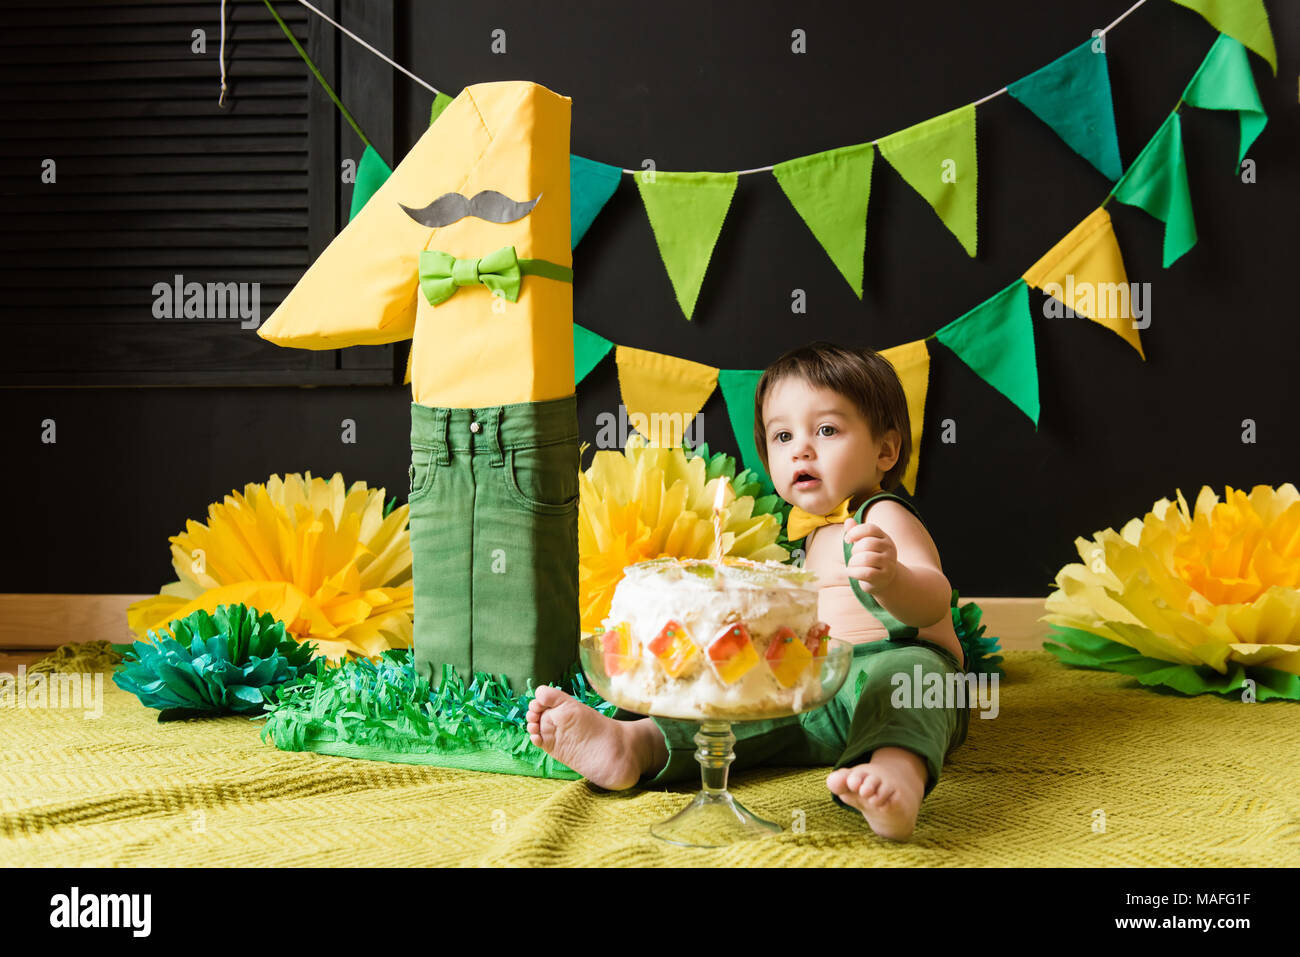 Party Of One Year Old Baby With Yellow And Green Paper Decoration Birthday Boy Figure Cake Candle